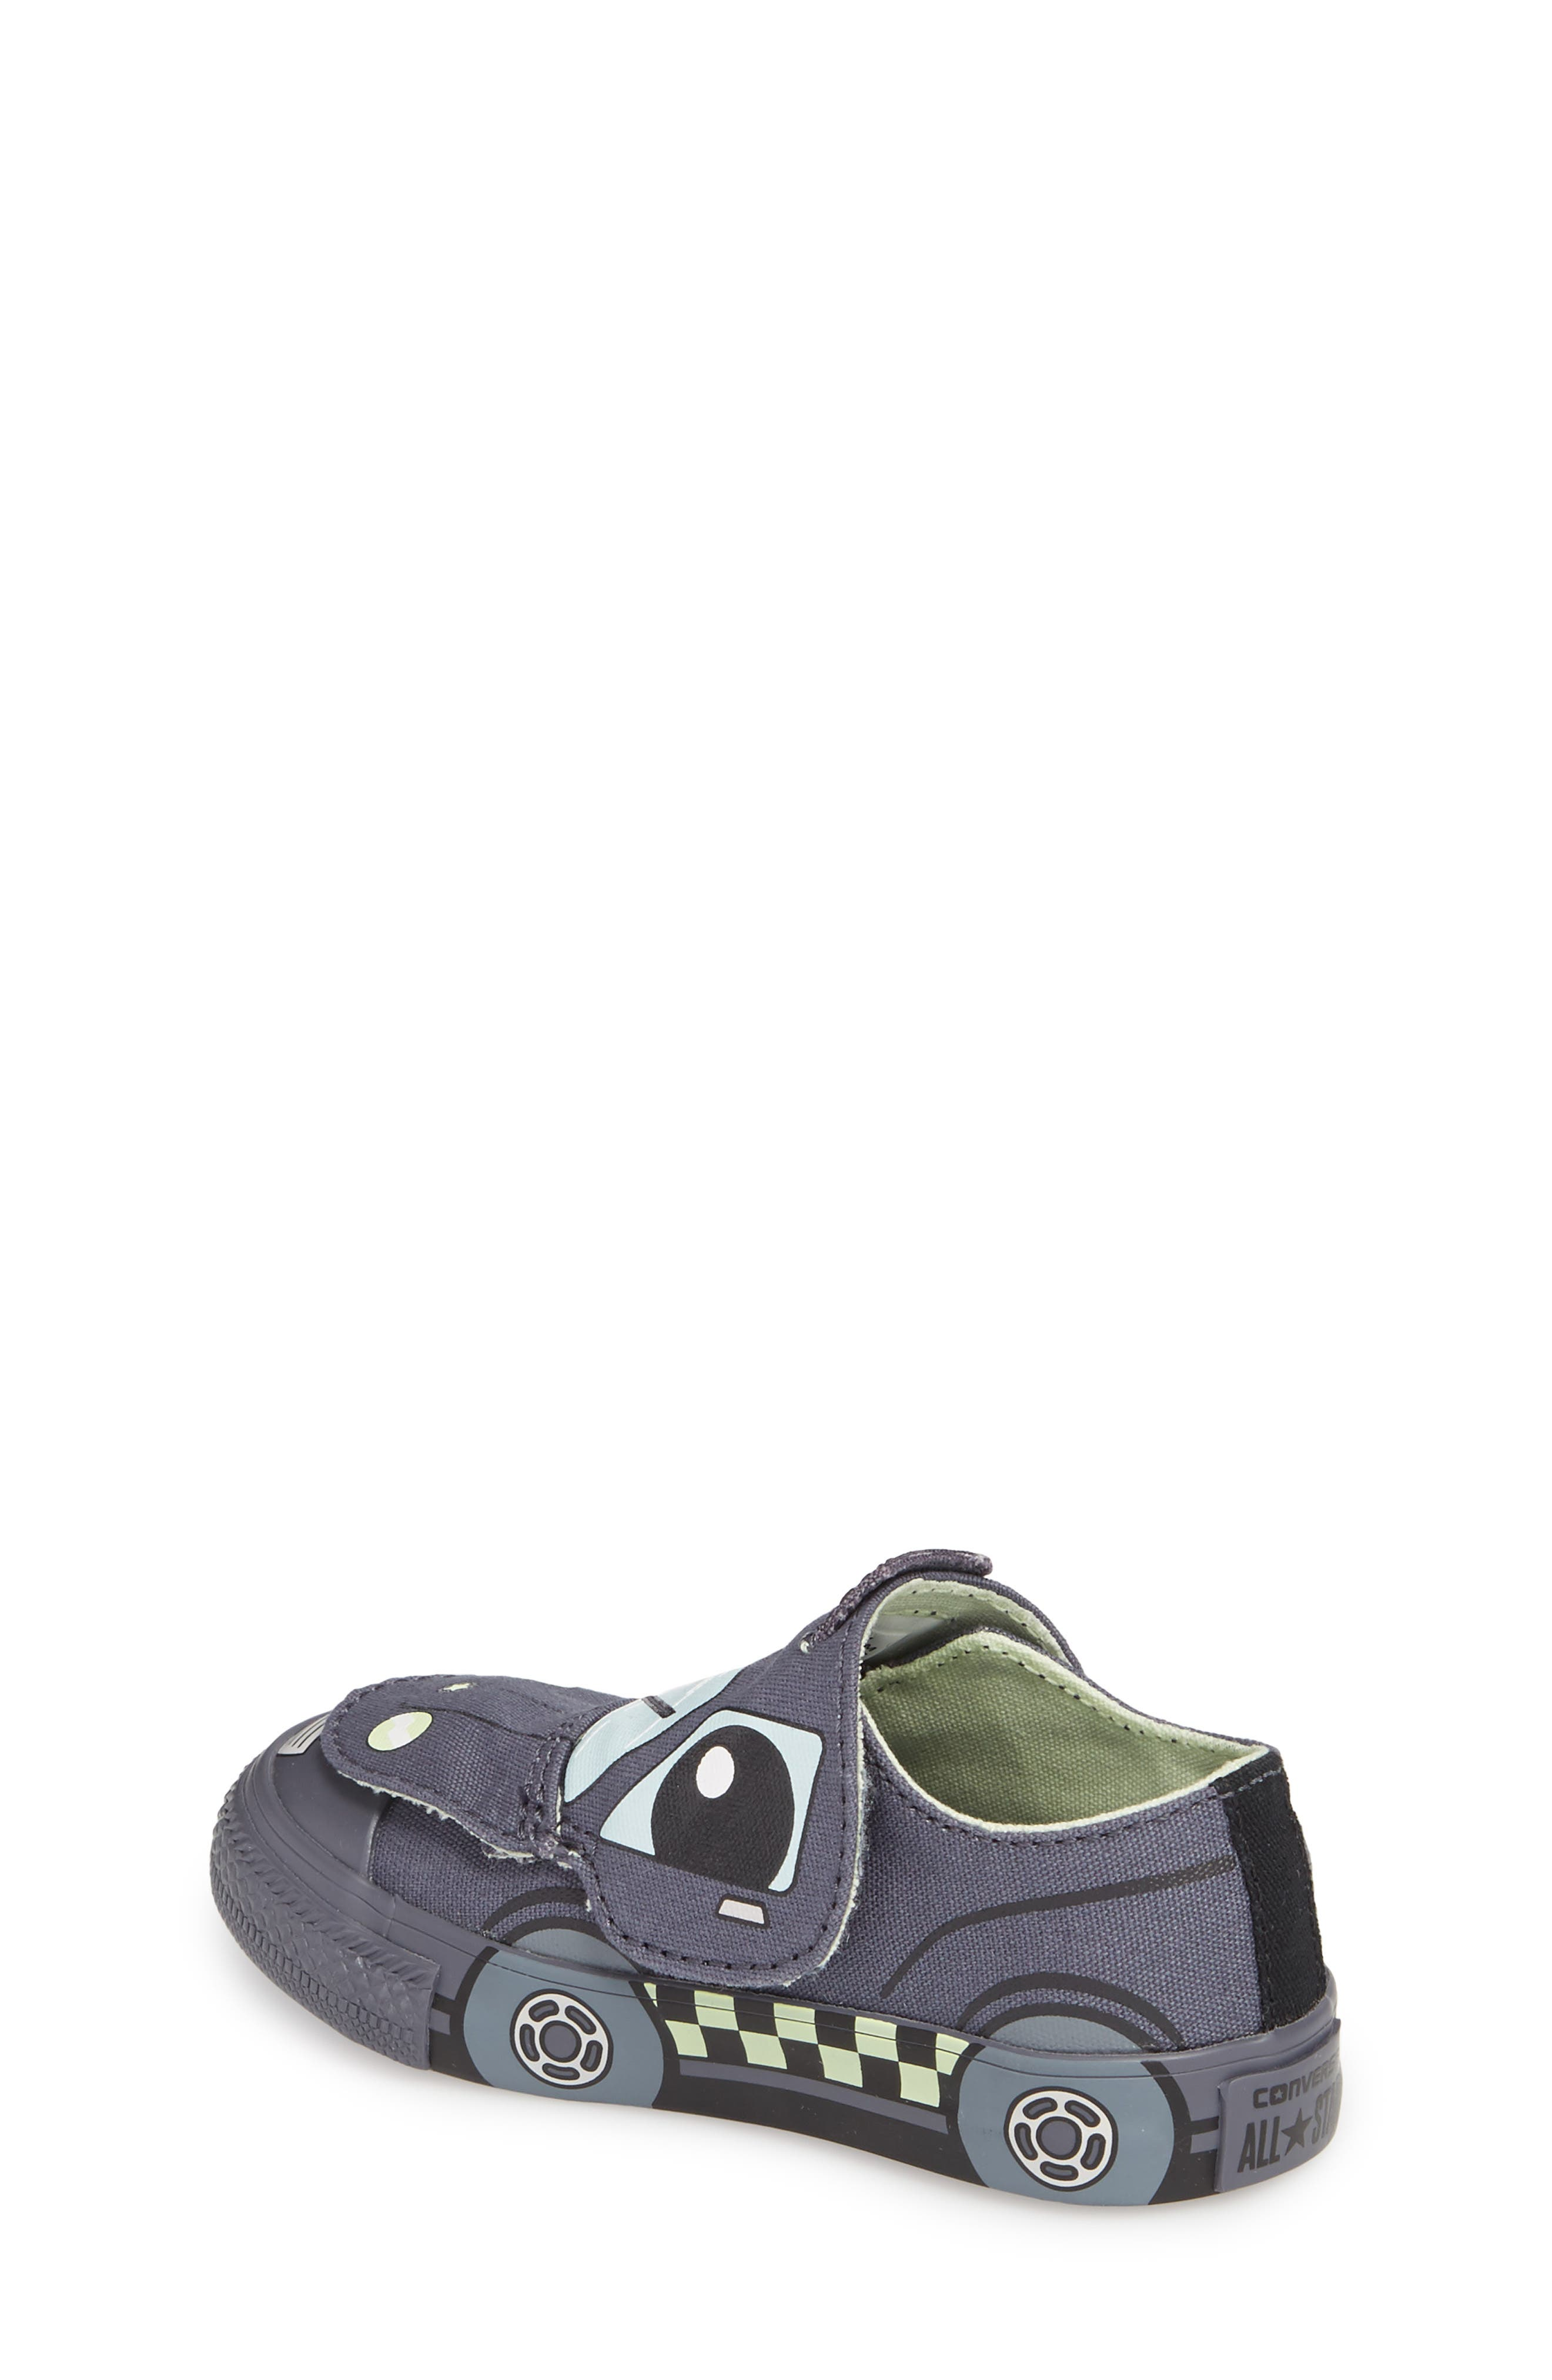 Chuck Taylor<sup>®</sup> All Star<sup>®</sup> Creatures Slip-On Sneaker,                             Alternate thumbnail 5, color,